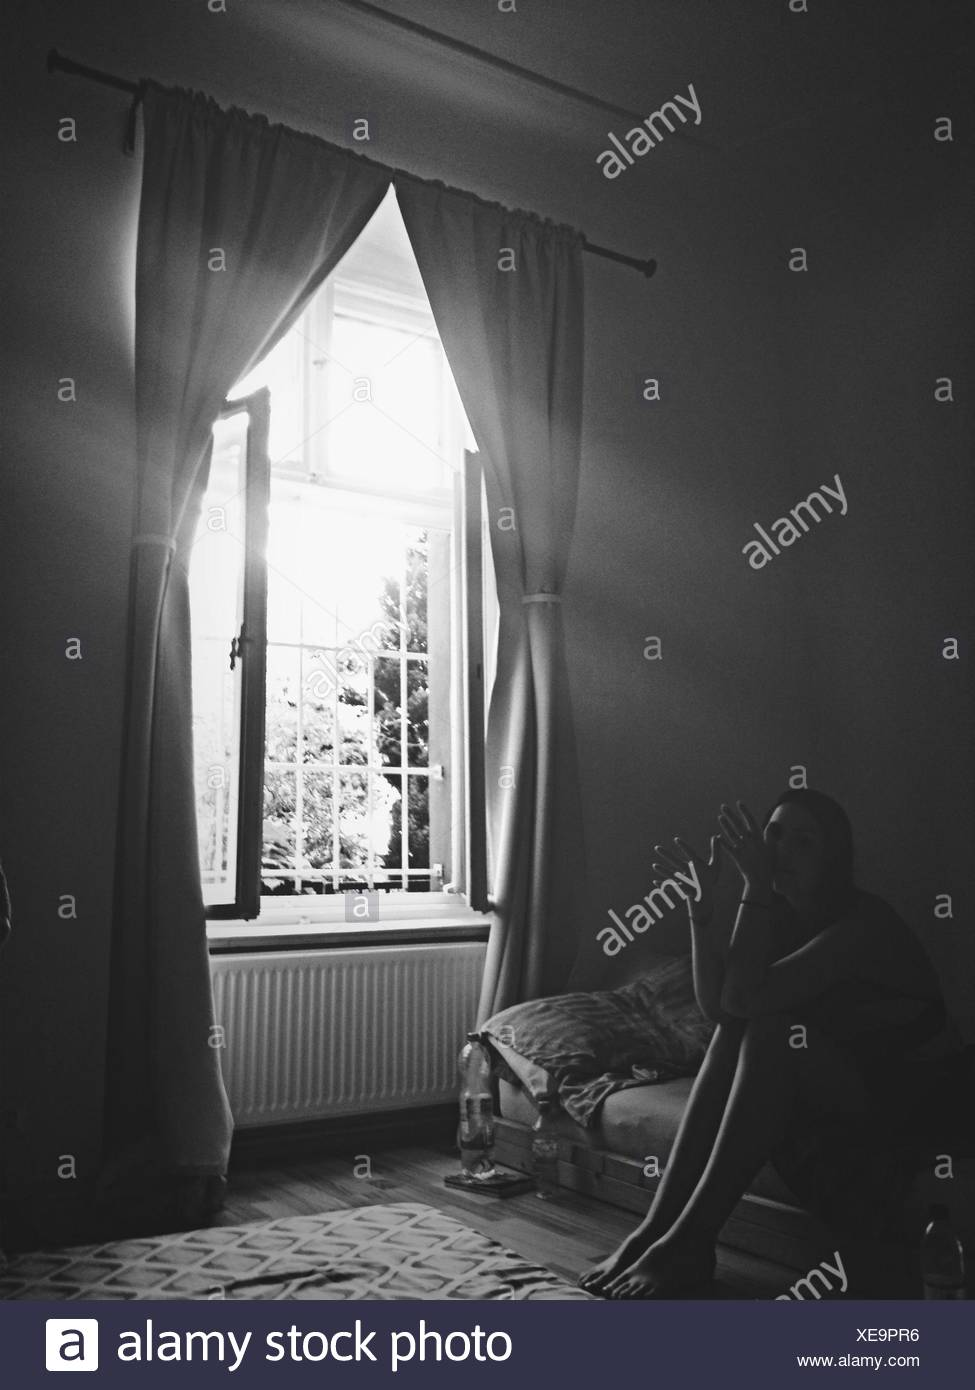 Woman Sitting In House - Stock Image